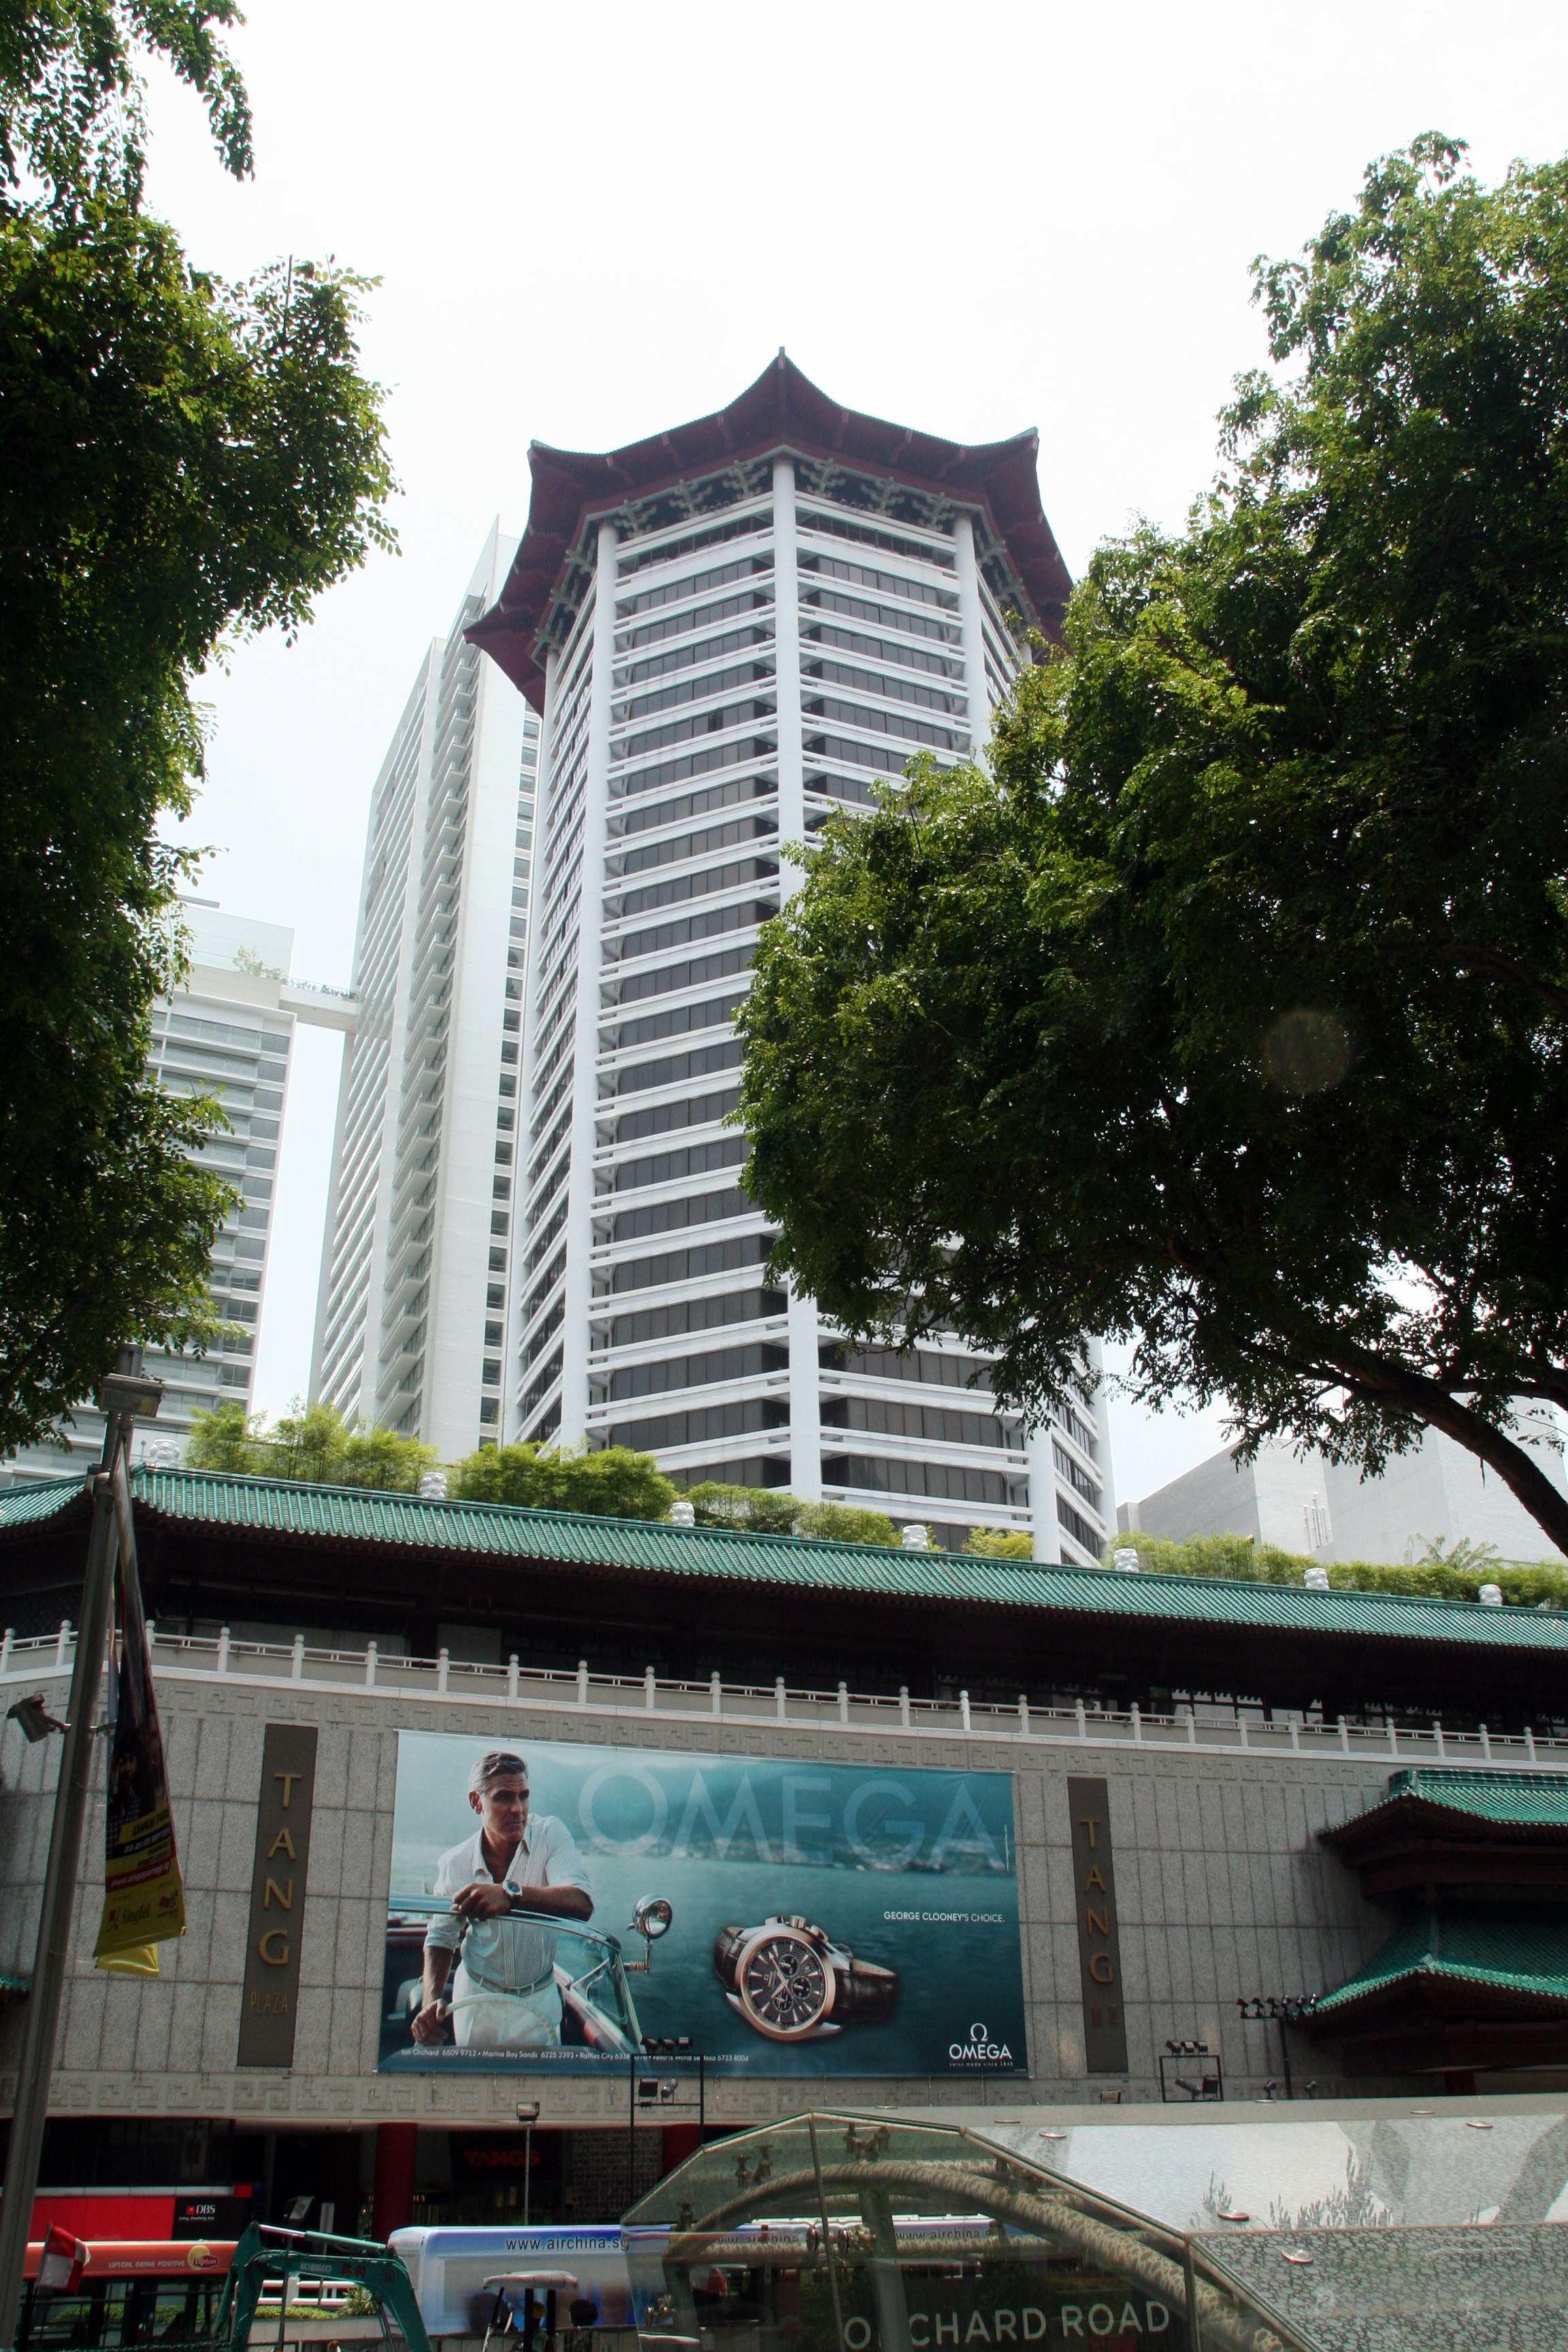 Marriott Hotel and Tangs Department Store